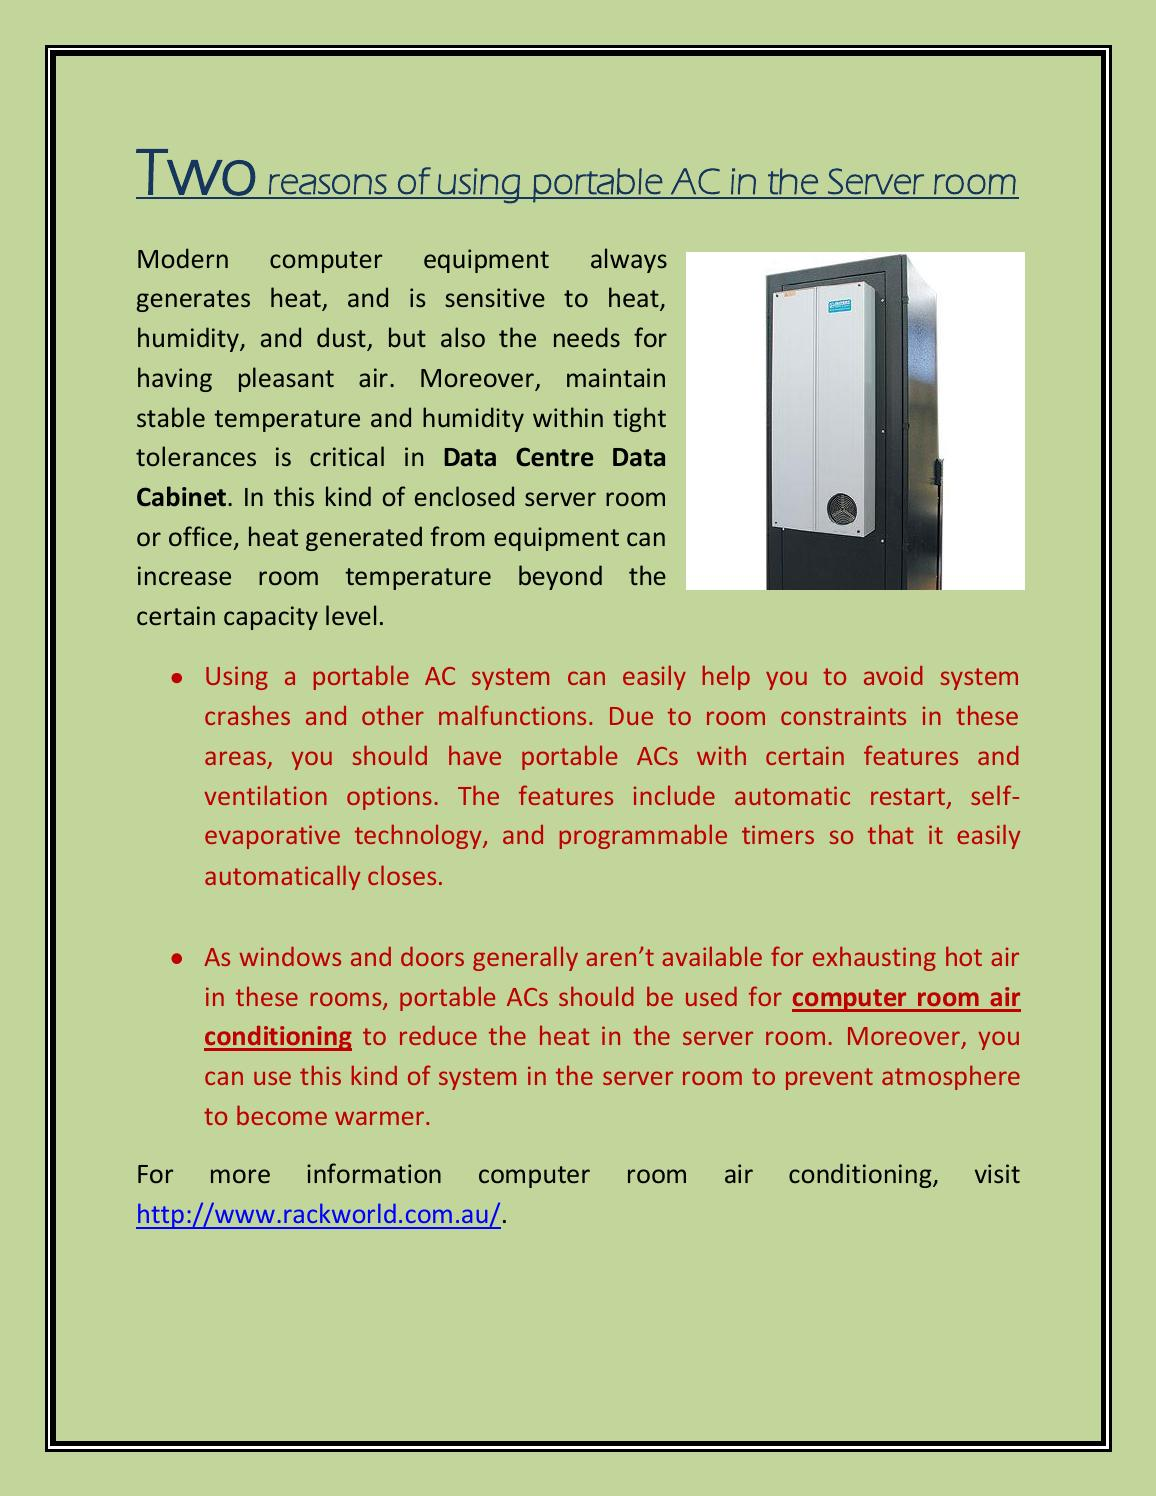 Pleasing Two Reasons Of Using Portable Ac In The Server Room By Interior Design Ideas Gentotthenellocom